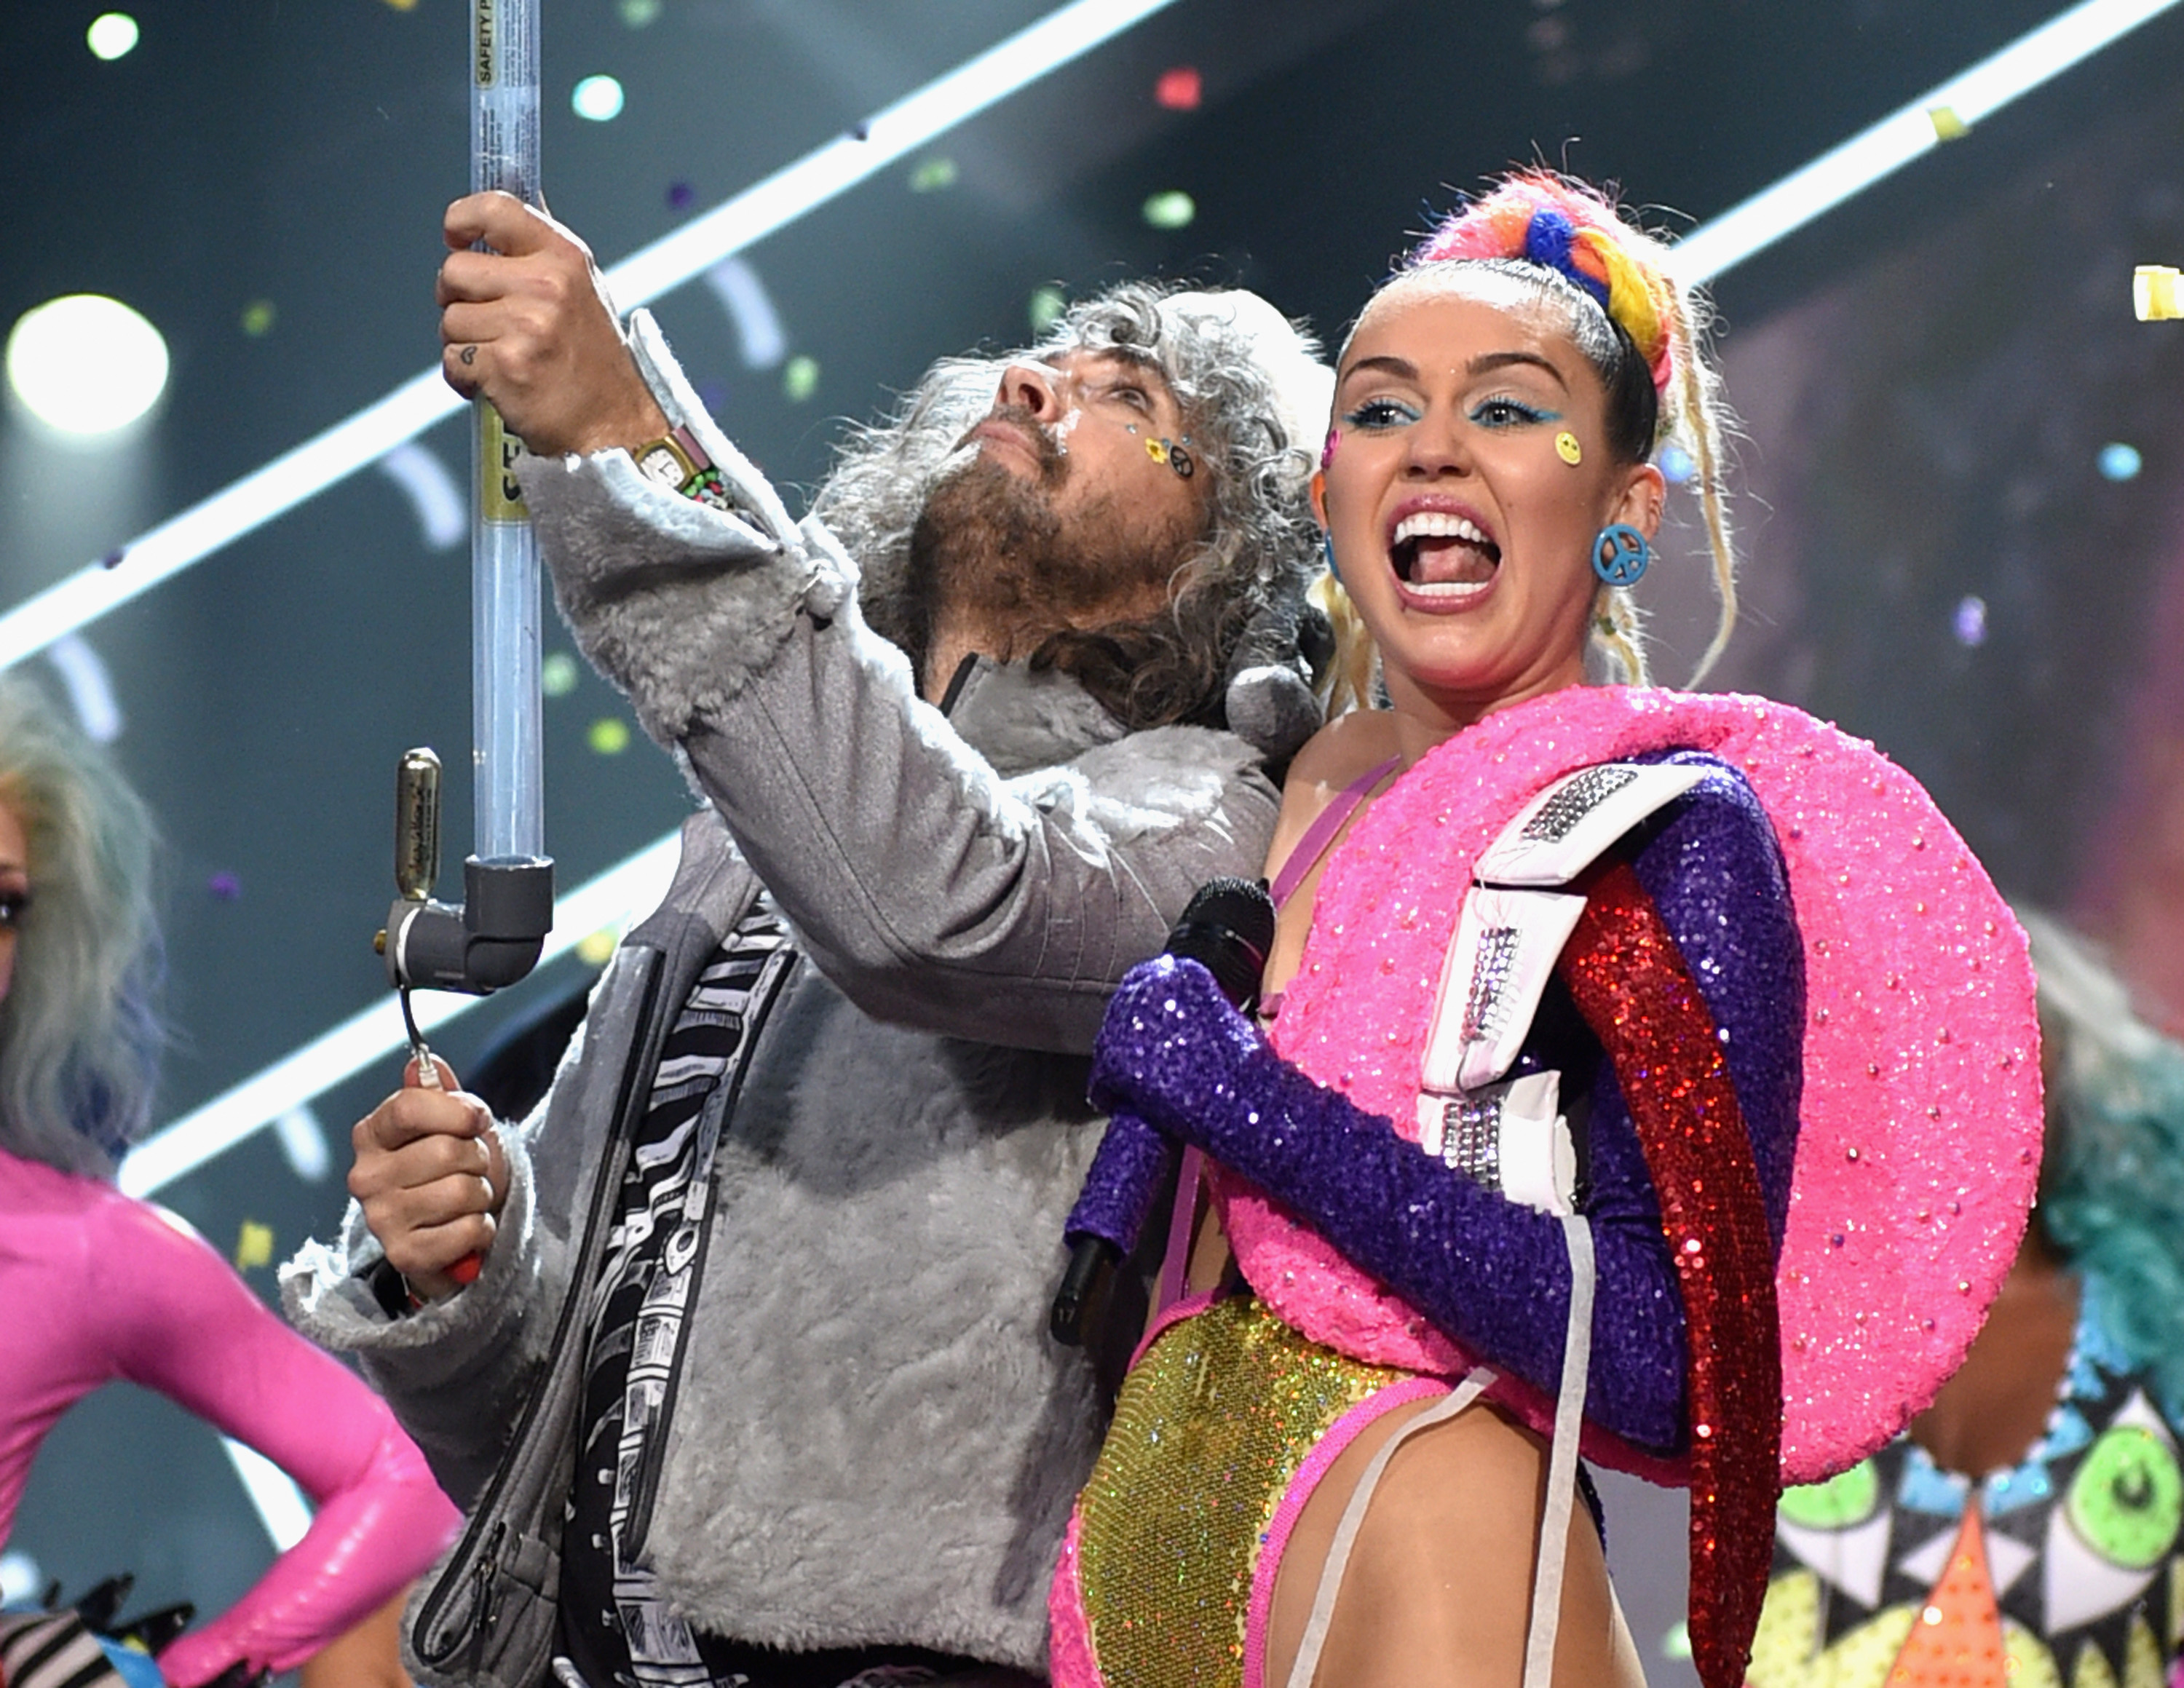 Musician Wayne Coyne of The Flaming Lips (L) and host Miley Cyrus, perform during the 2015 MTV Video Music Awards on August 30, 2015 in Los Angeles, California.